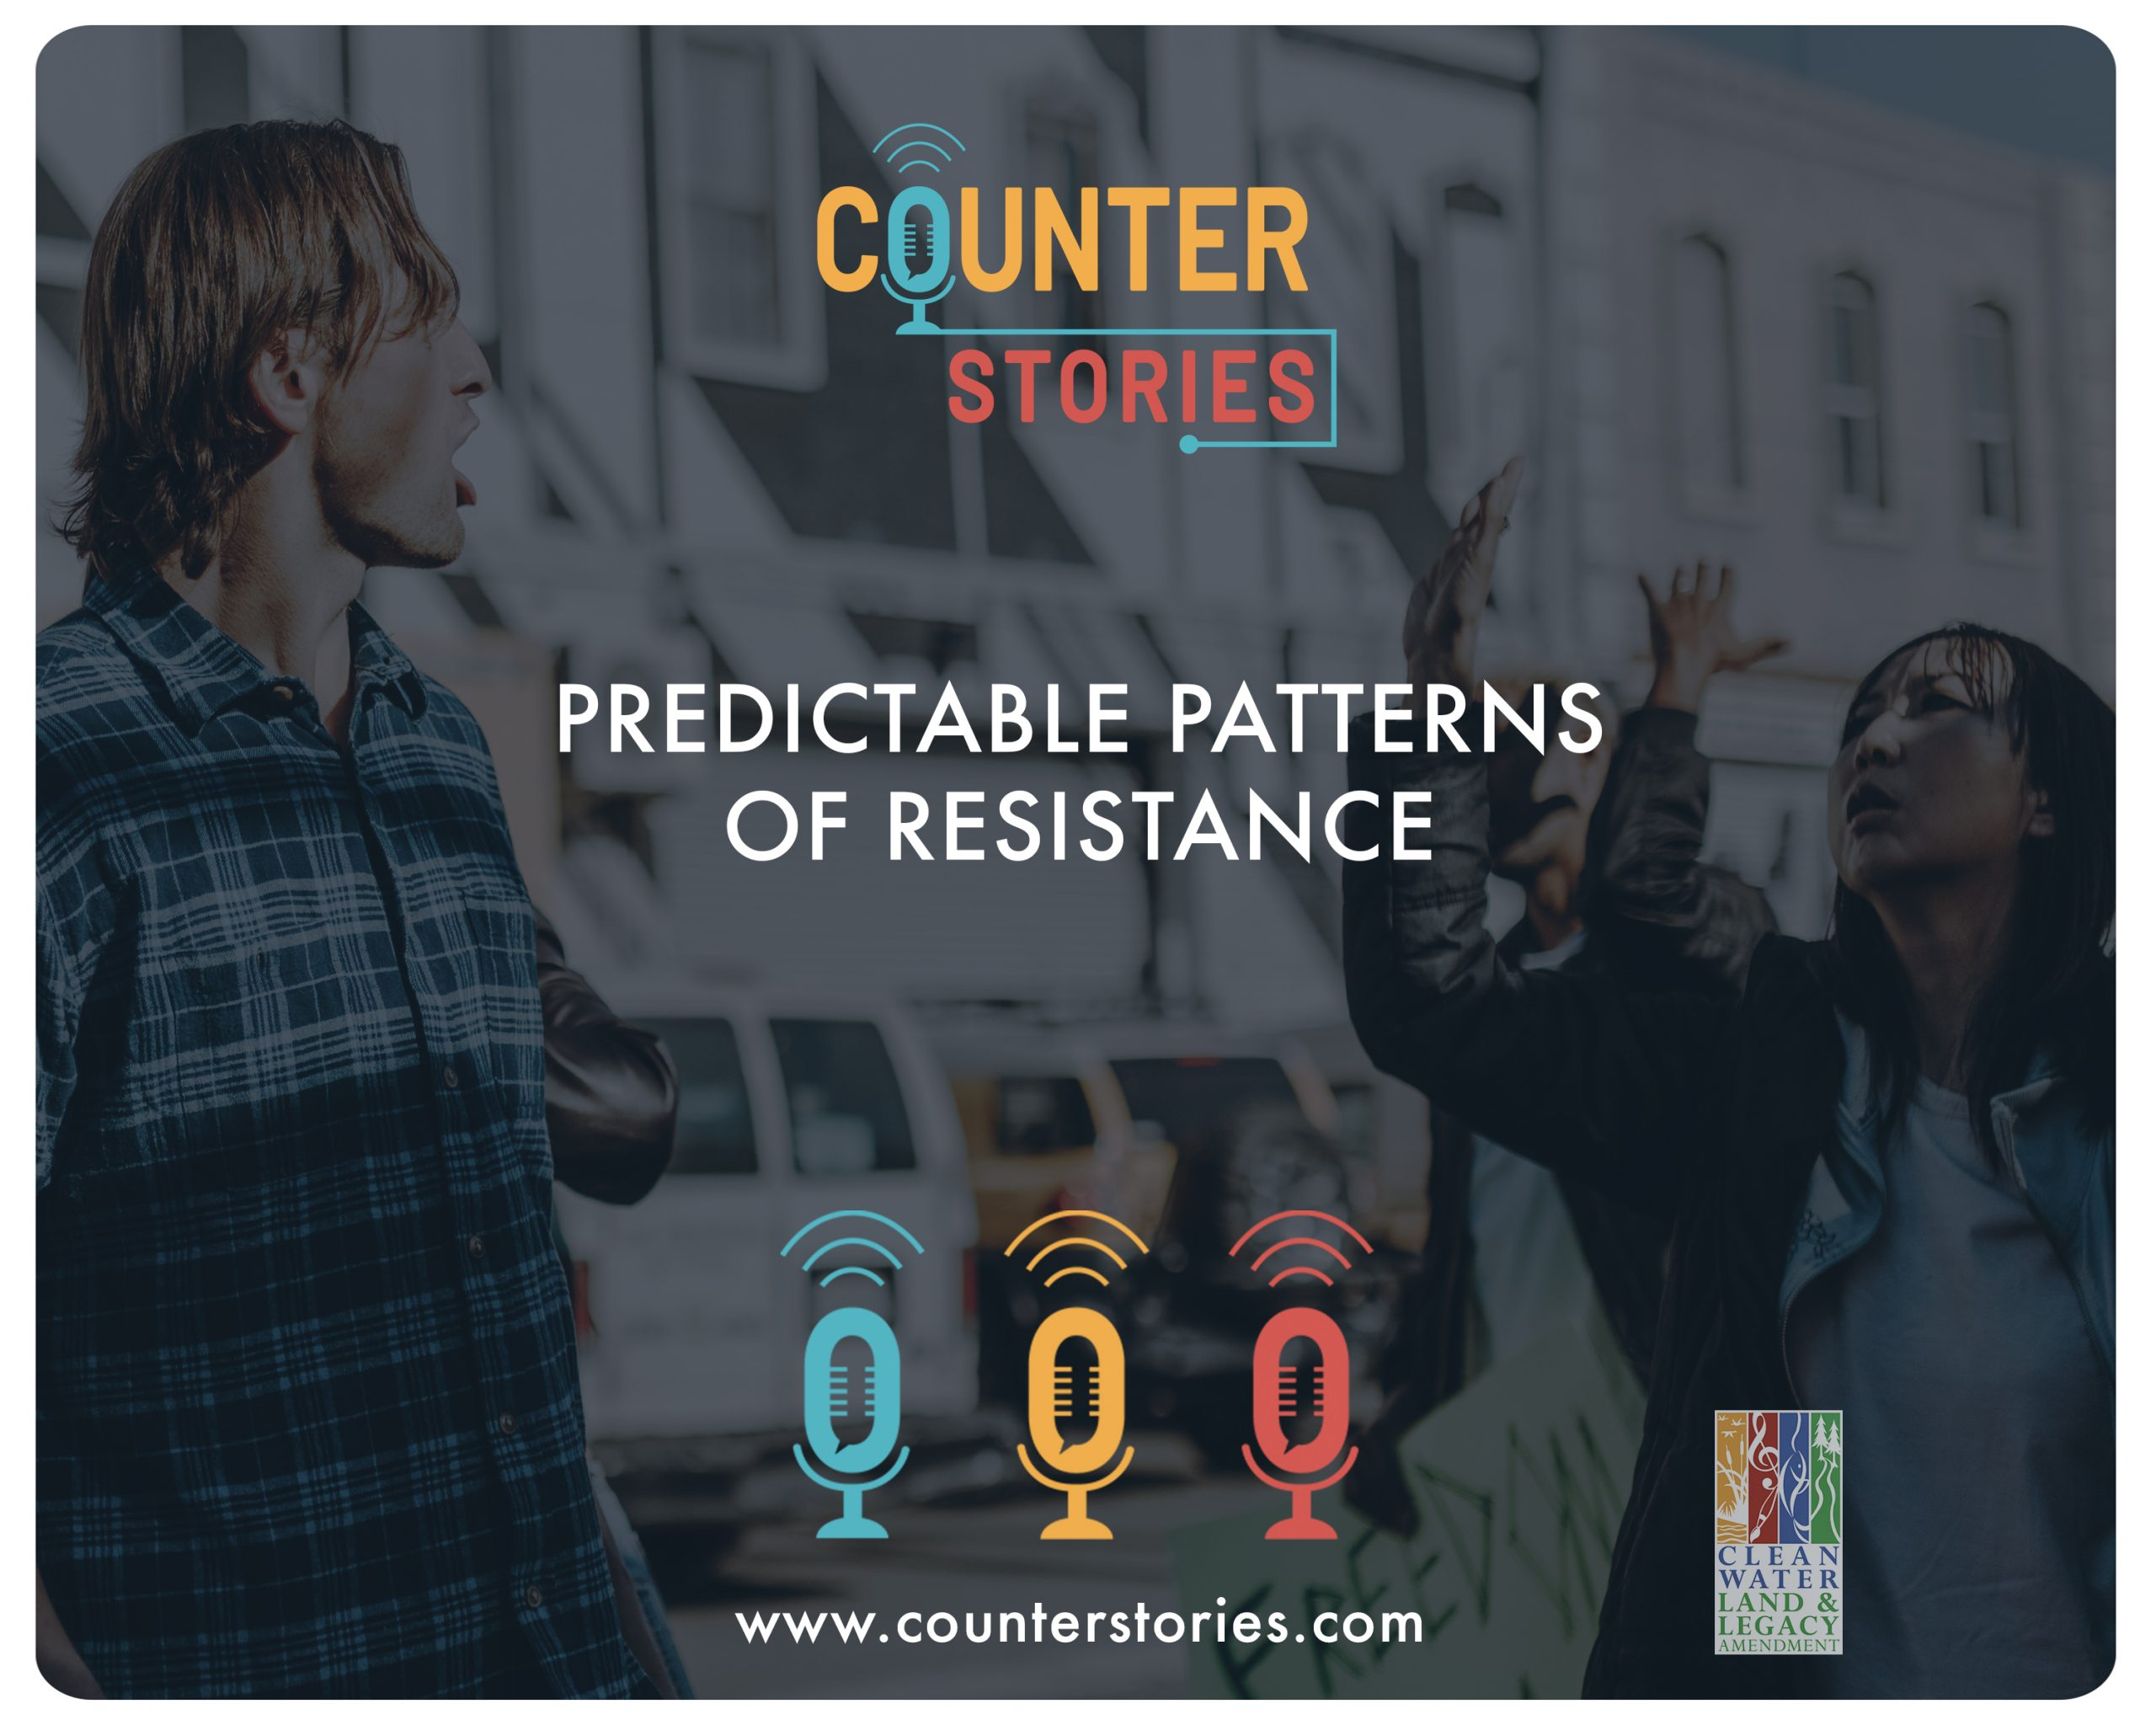 Predictable Patterns of Resistance